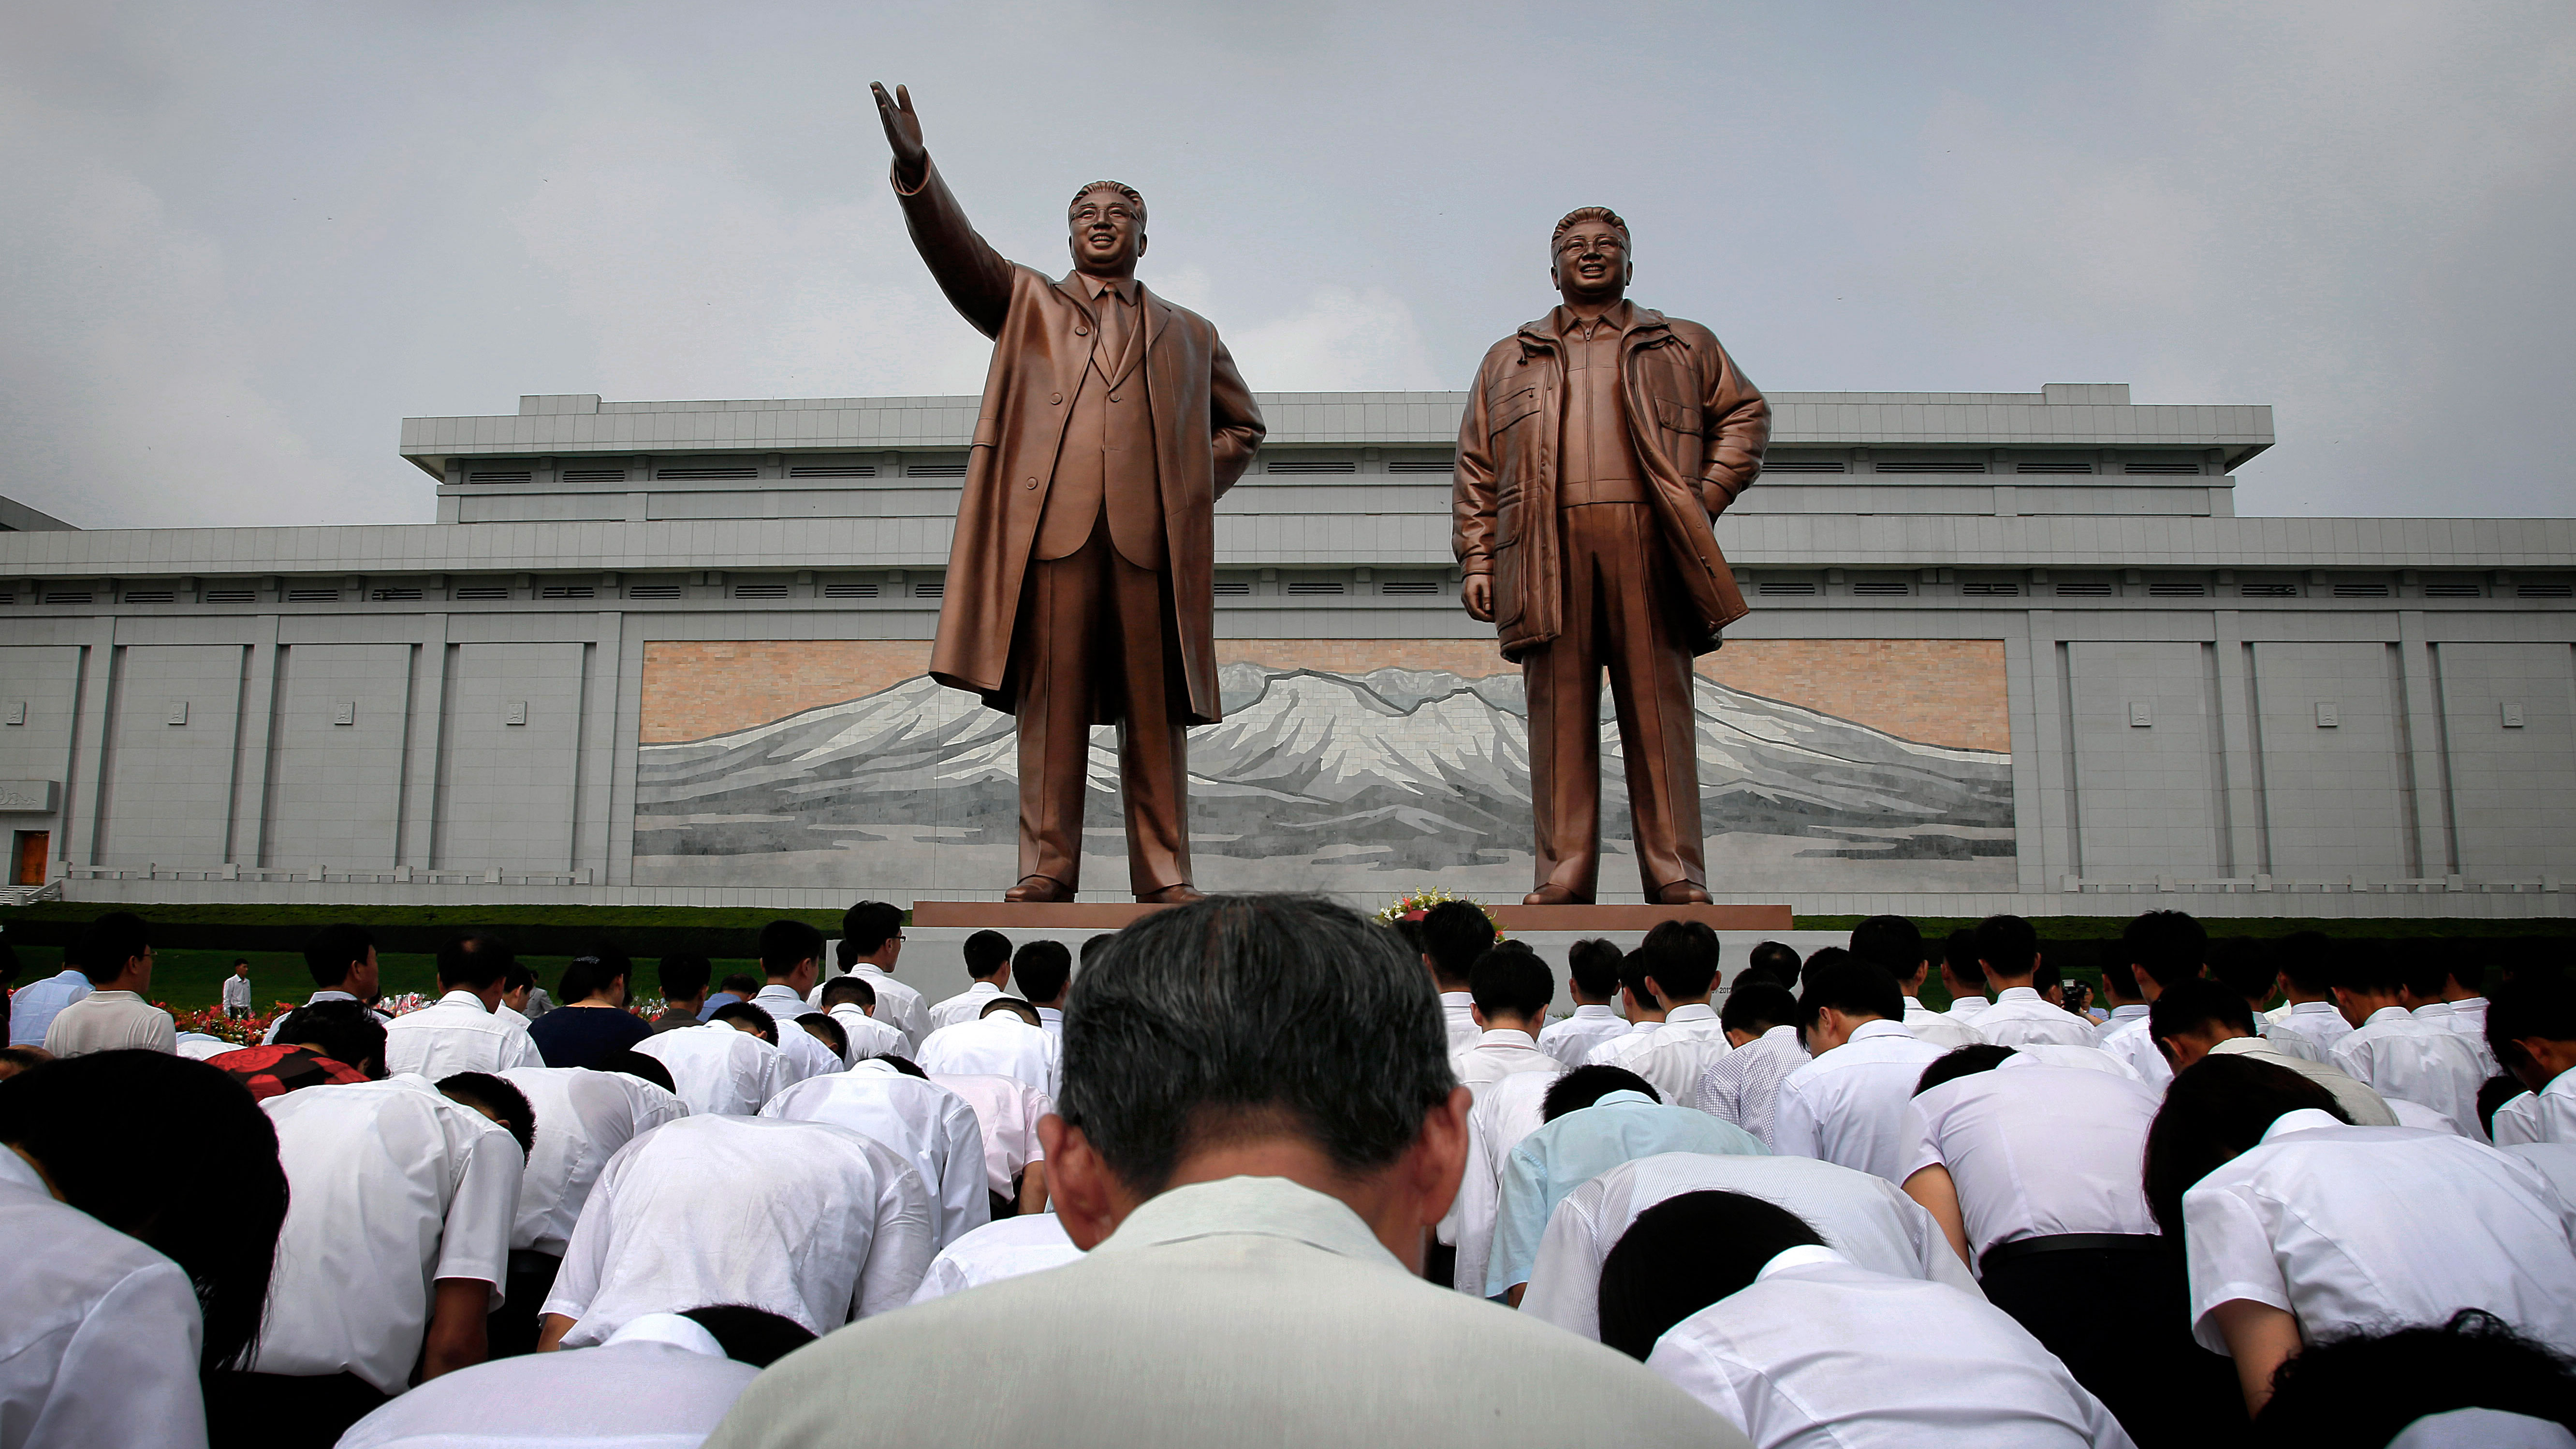 A Western student went to North Korea to study and he describes what it was like